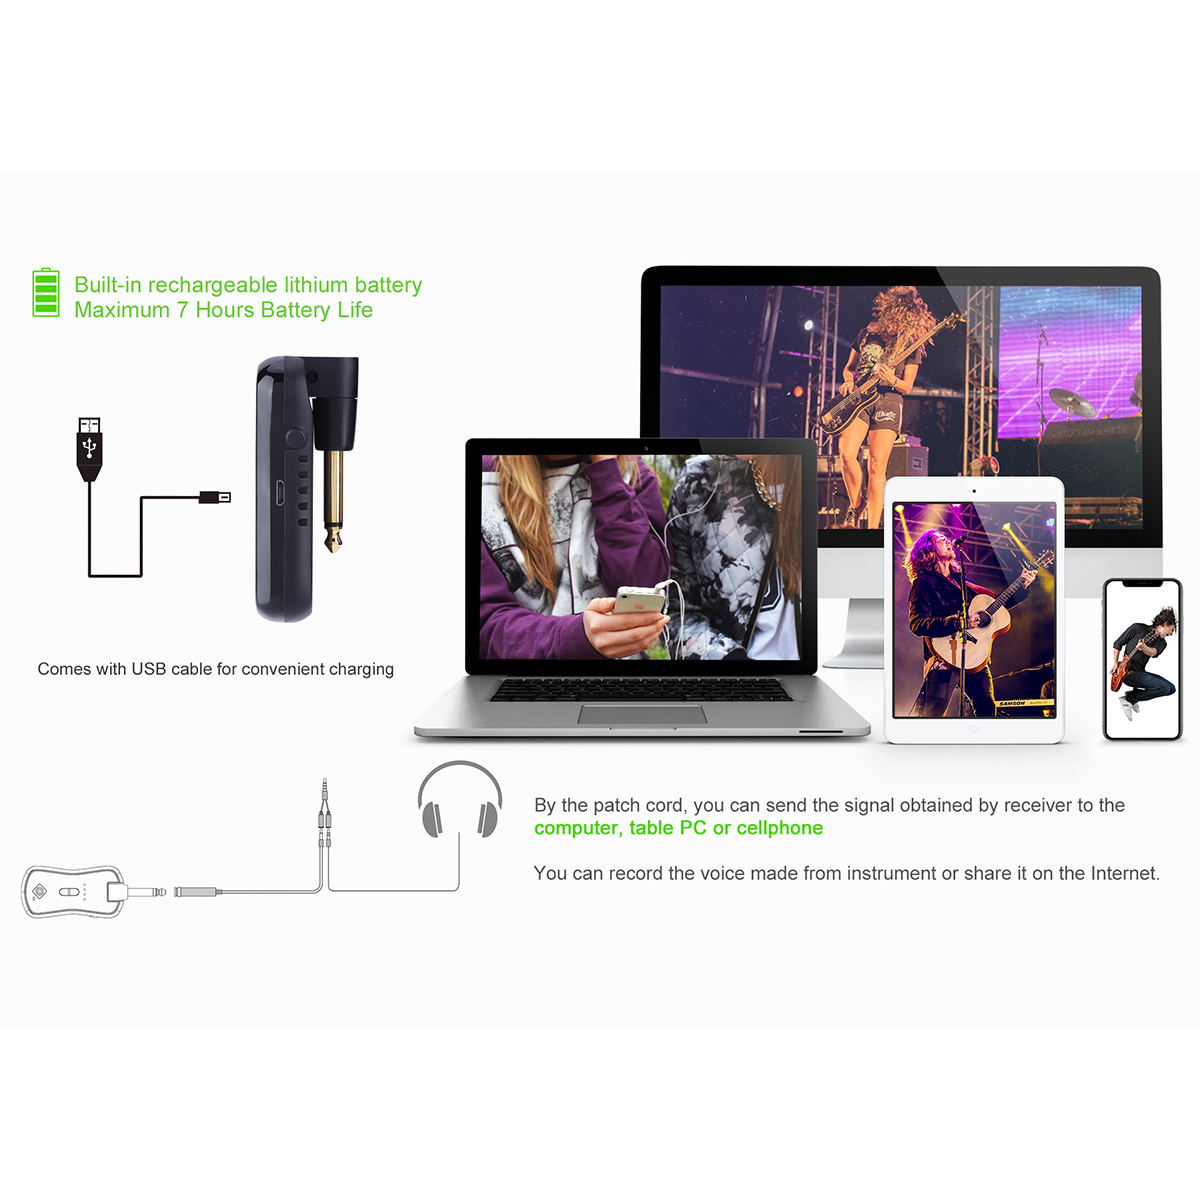 Hoison S8 Wireless Audio Transmission System With Transmitter Receiver Built-in Lithium Battery for Electric Guitar